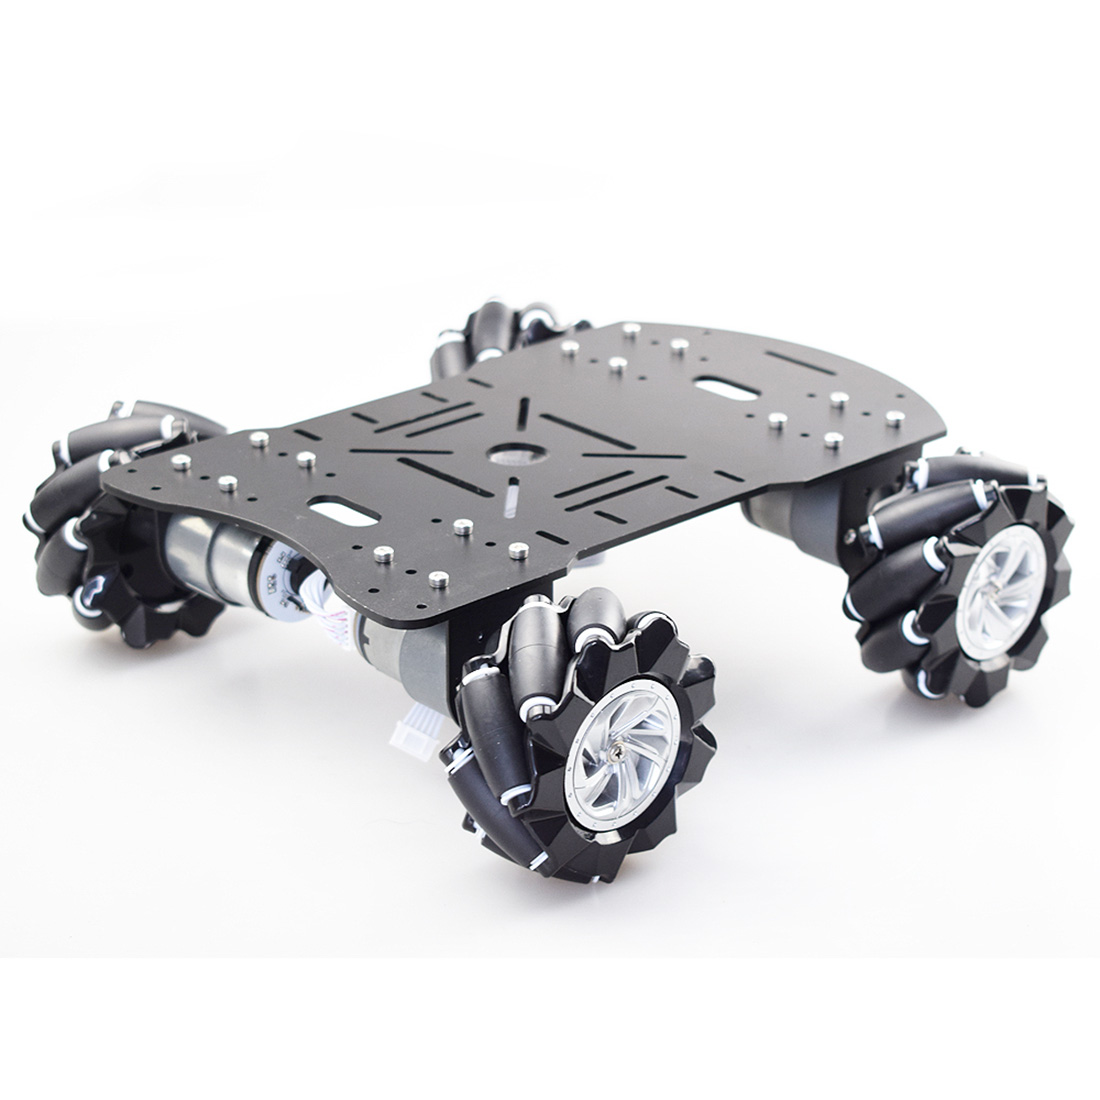 80mm Mecanum Acrylic Platform Kit DIY Omni-Directional Mecanum Wheel Robot Car Without Electronic Control - Black